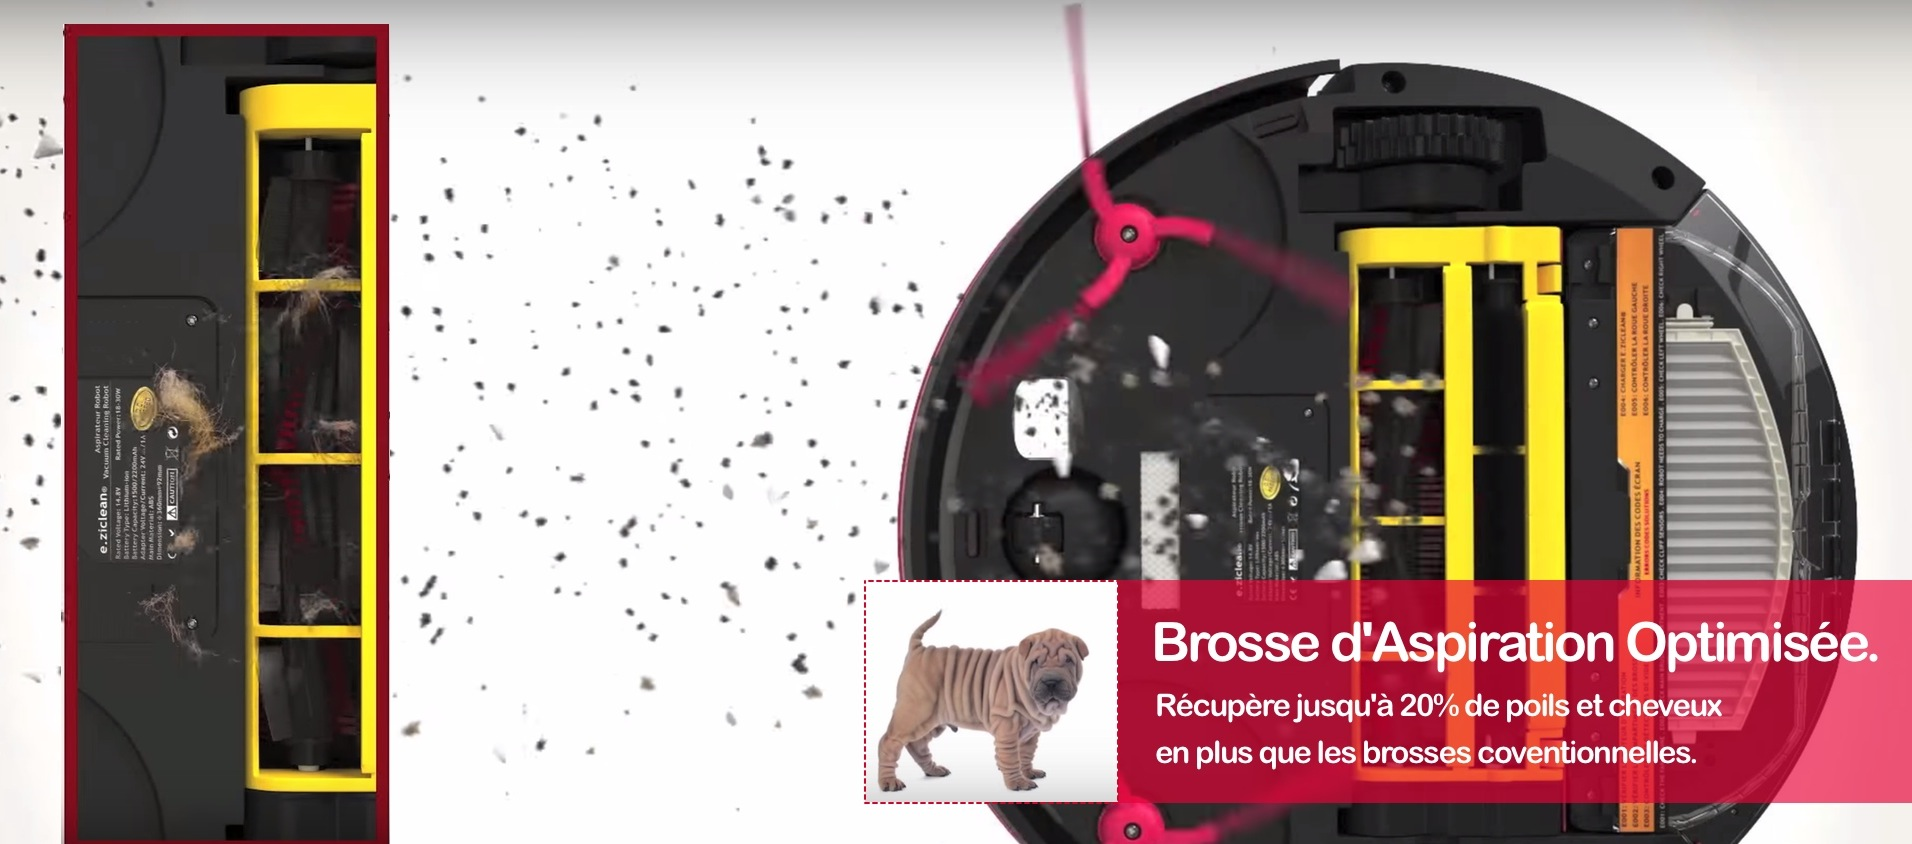 Robot aspirateur pools animaux efficacy